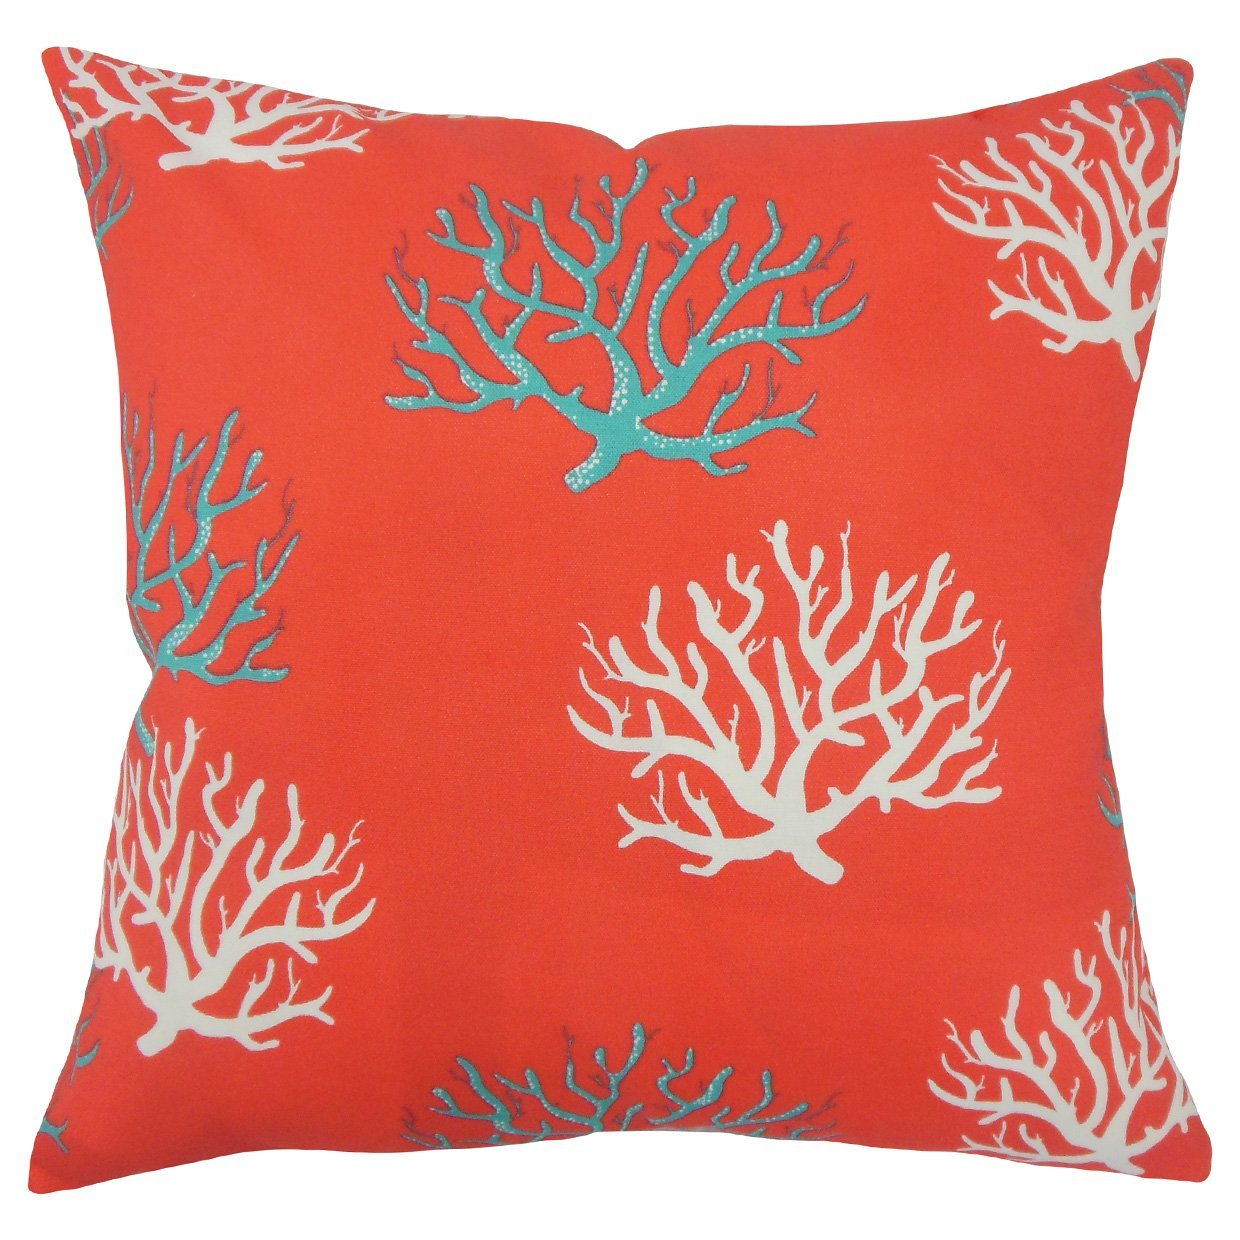 Orange Synthetic Graphic Coastal Throw Pillow Cover